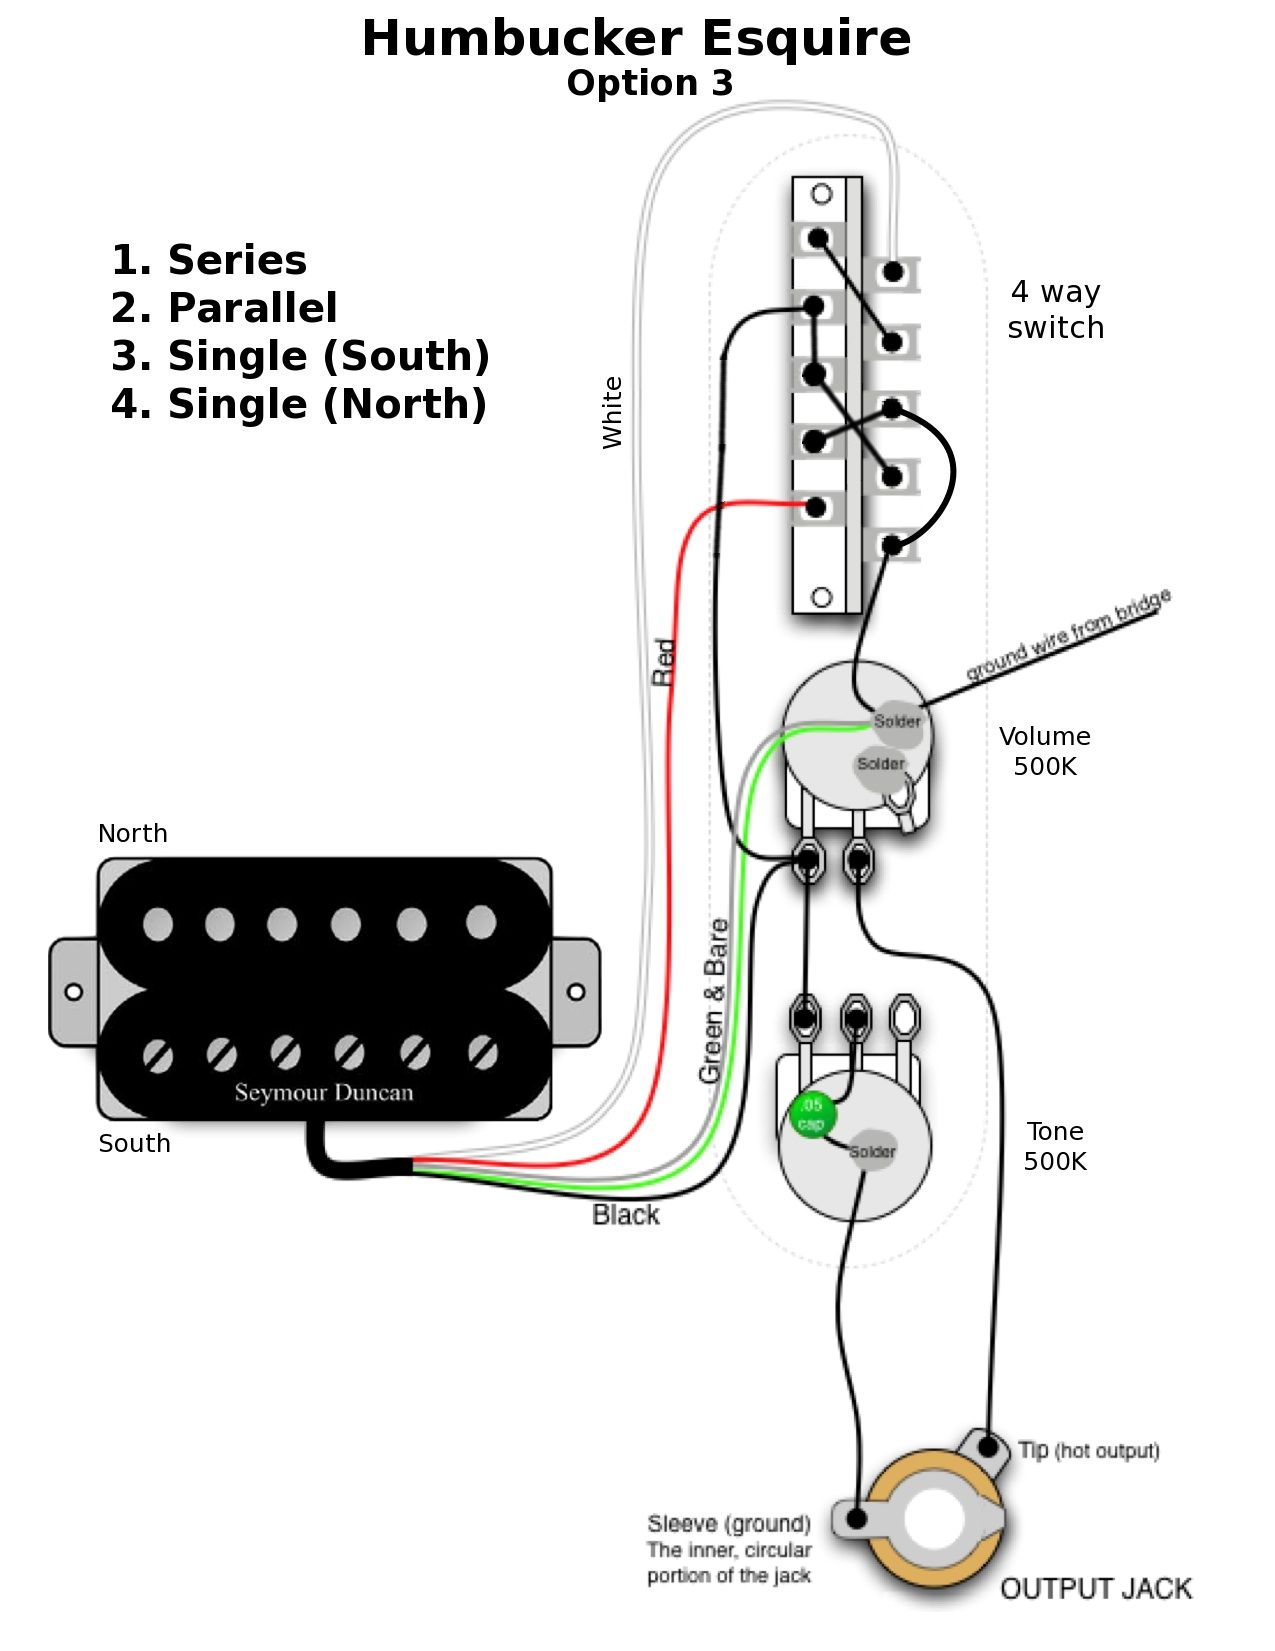 Dodge Ram 1983 D150 Wiring Diagram Wiring Diagrams together with 3 Pickup Les Paul Wiring Diagram likewise Guitar Wiring Diagram 1 Humbucker 1 Volume 1 Tone besides Dimarzio Series Parallel Wiring Diagram furthermore 21106 Mod Garage Decouple Your Les Pauls Volume Controls. on 2 humbucker wiring diagrams